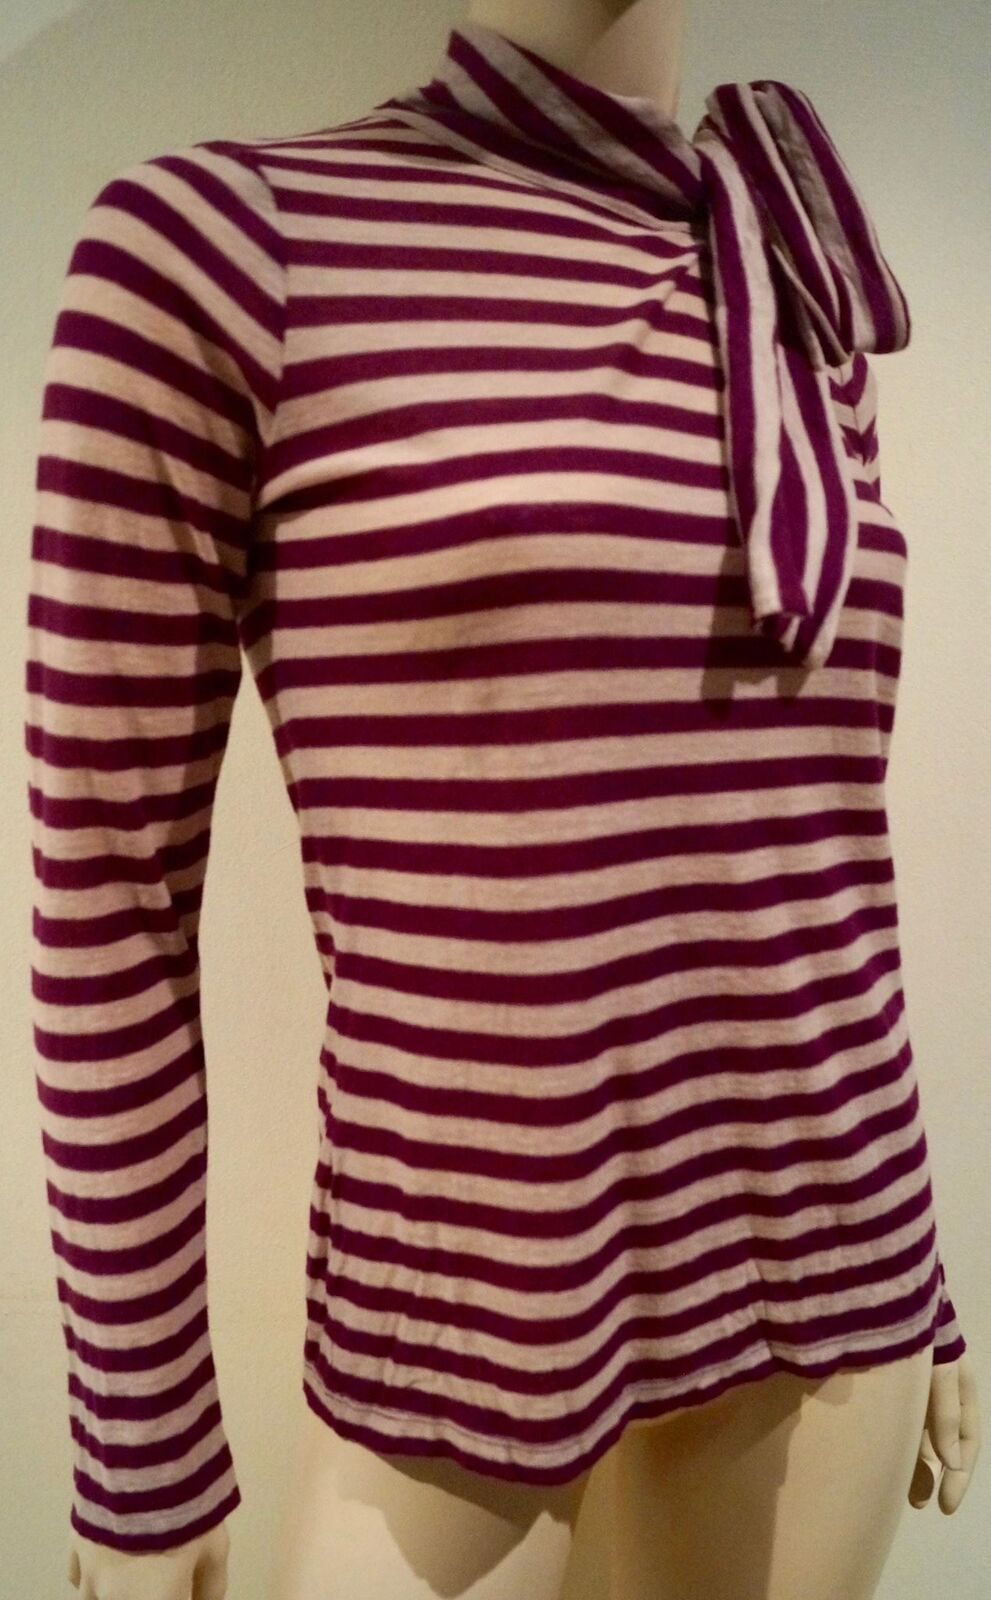 SONIA RYKIEL Cream & rot Stripe Wool Blend Tie Neck Long Sleeve Sweater Top Sz M